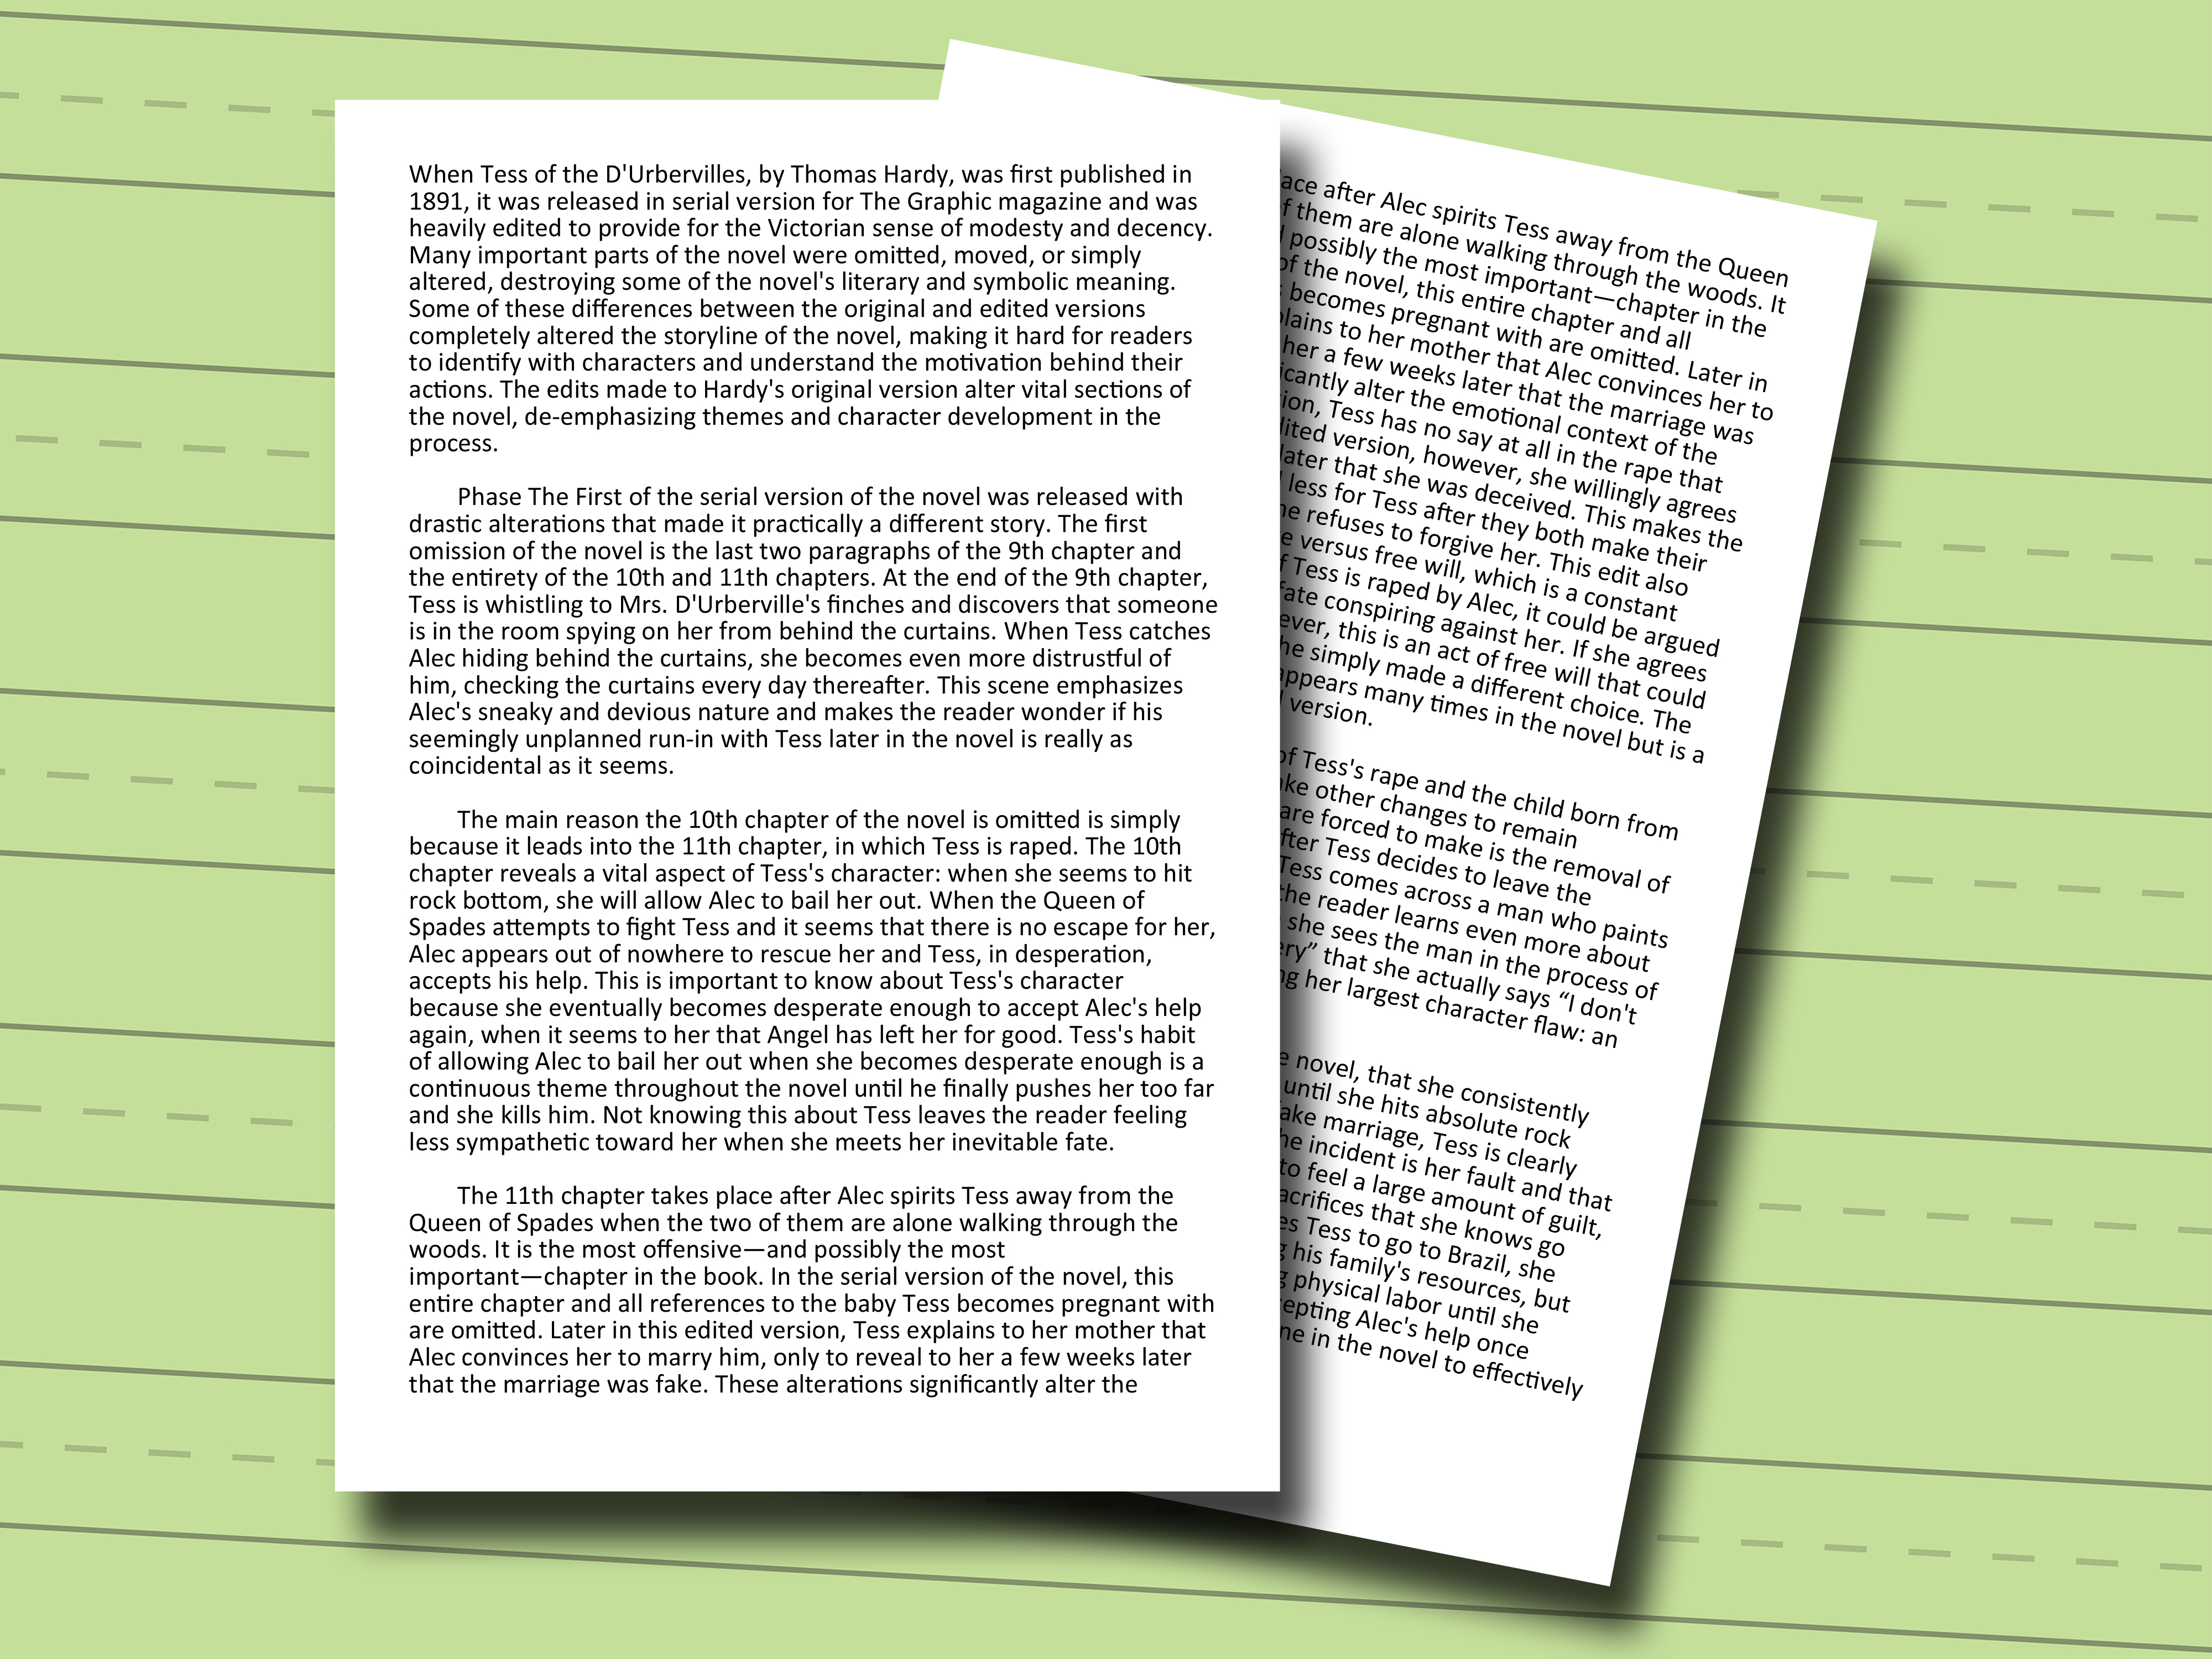 Grade Essay How To Write An English Essay On Time Grades 7 12 6